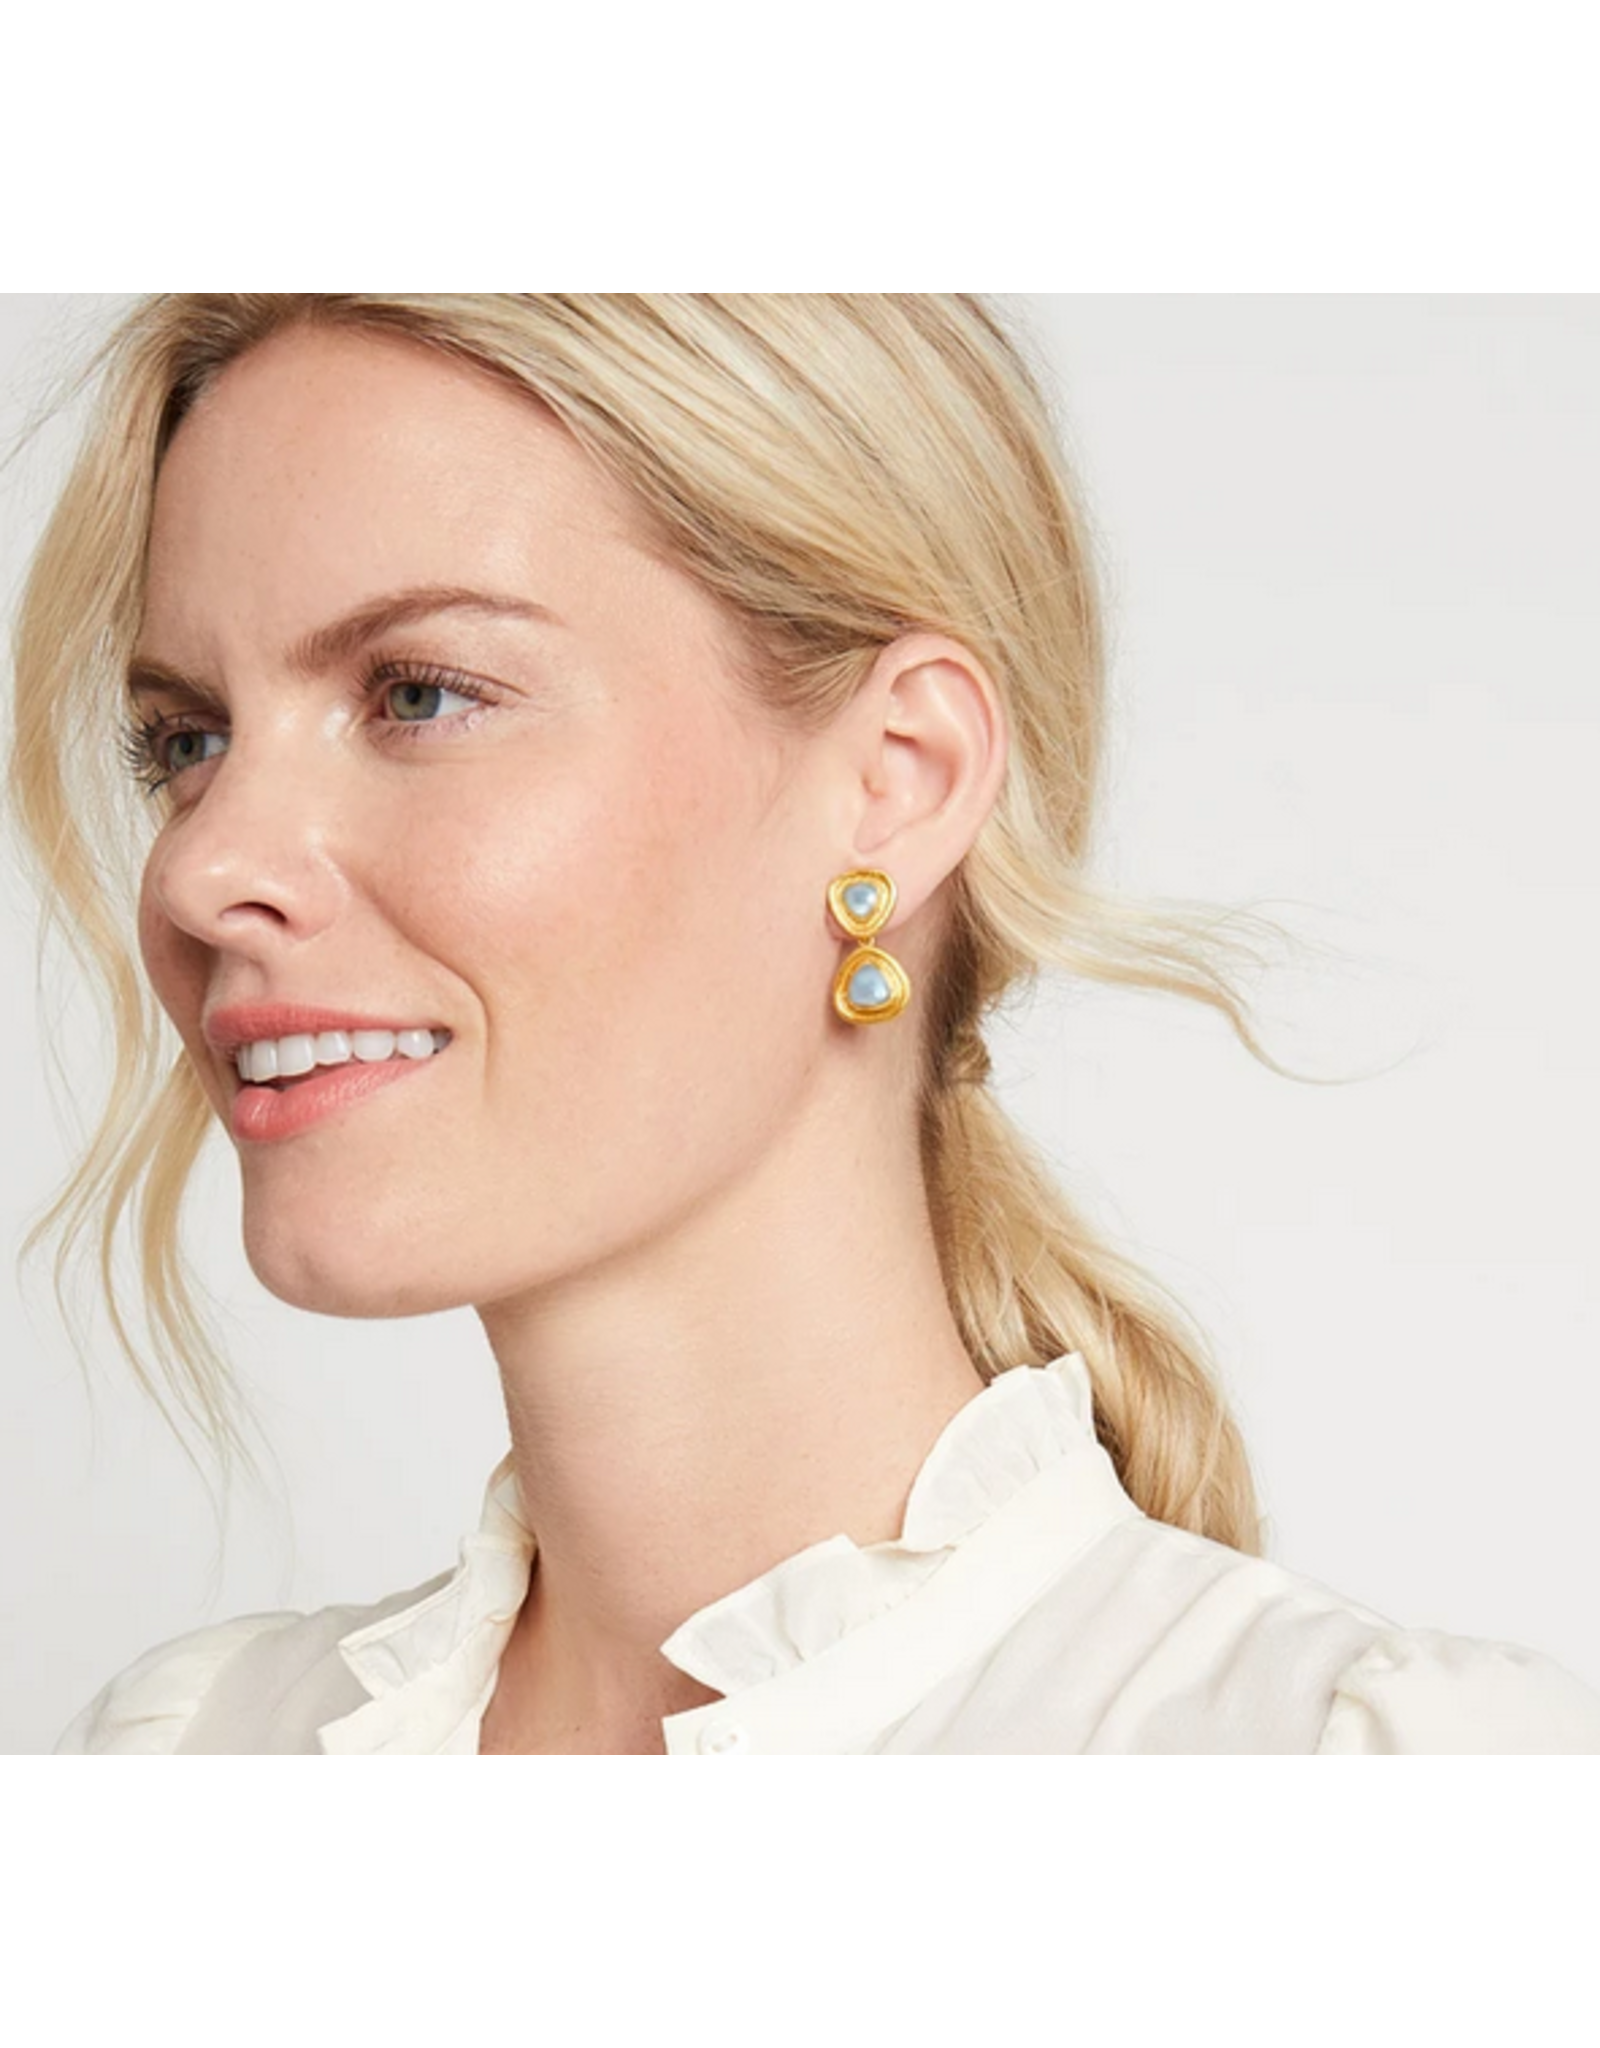 Julie Vos Barcelona Midi Earring in Chalcedony Blue by Julie Vos